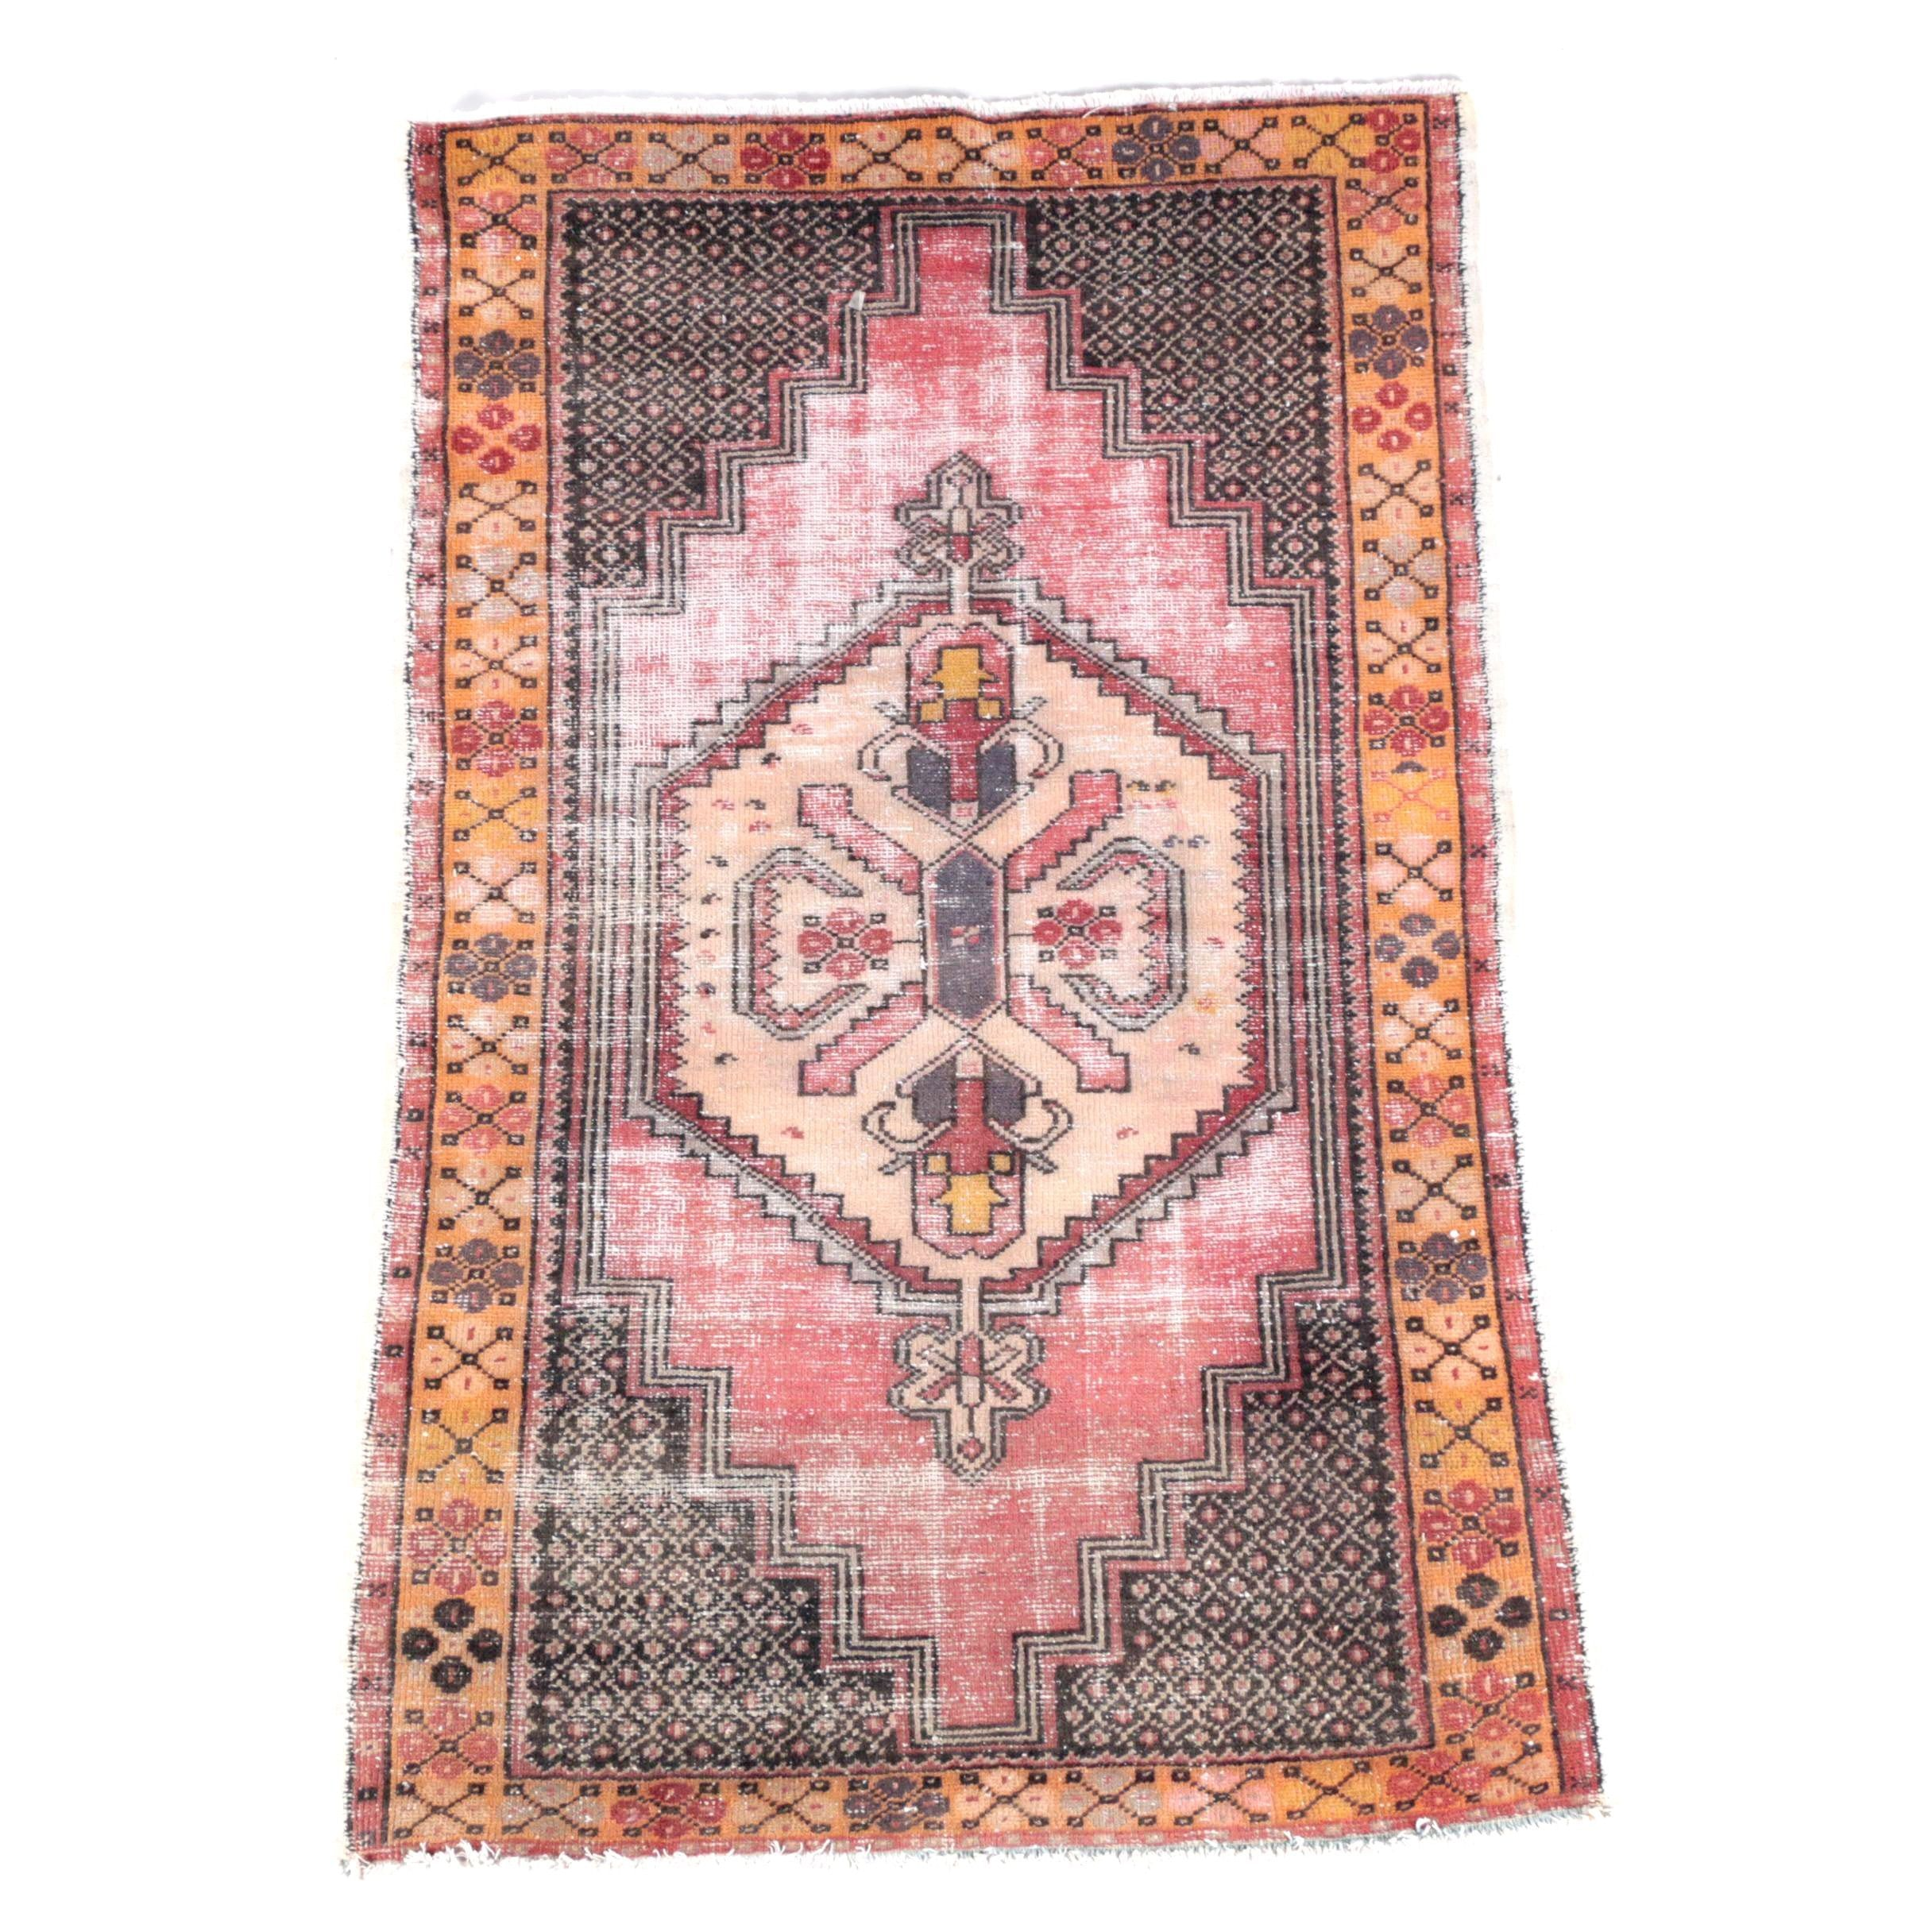 Semi-Antique Hand-Knotted Anatolian Wool Area Rug